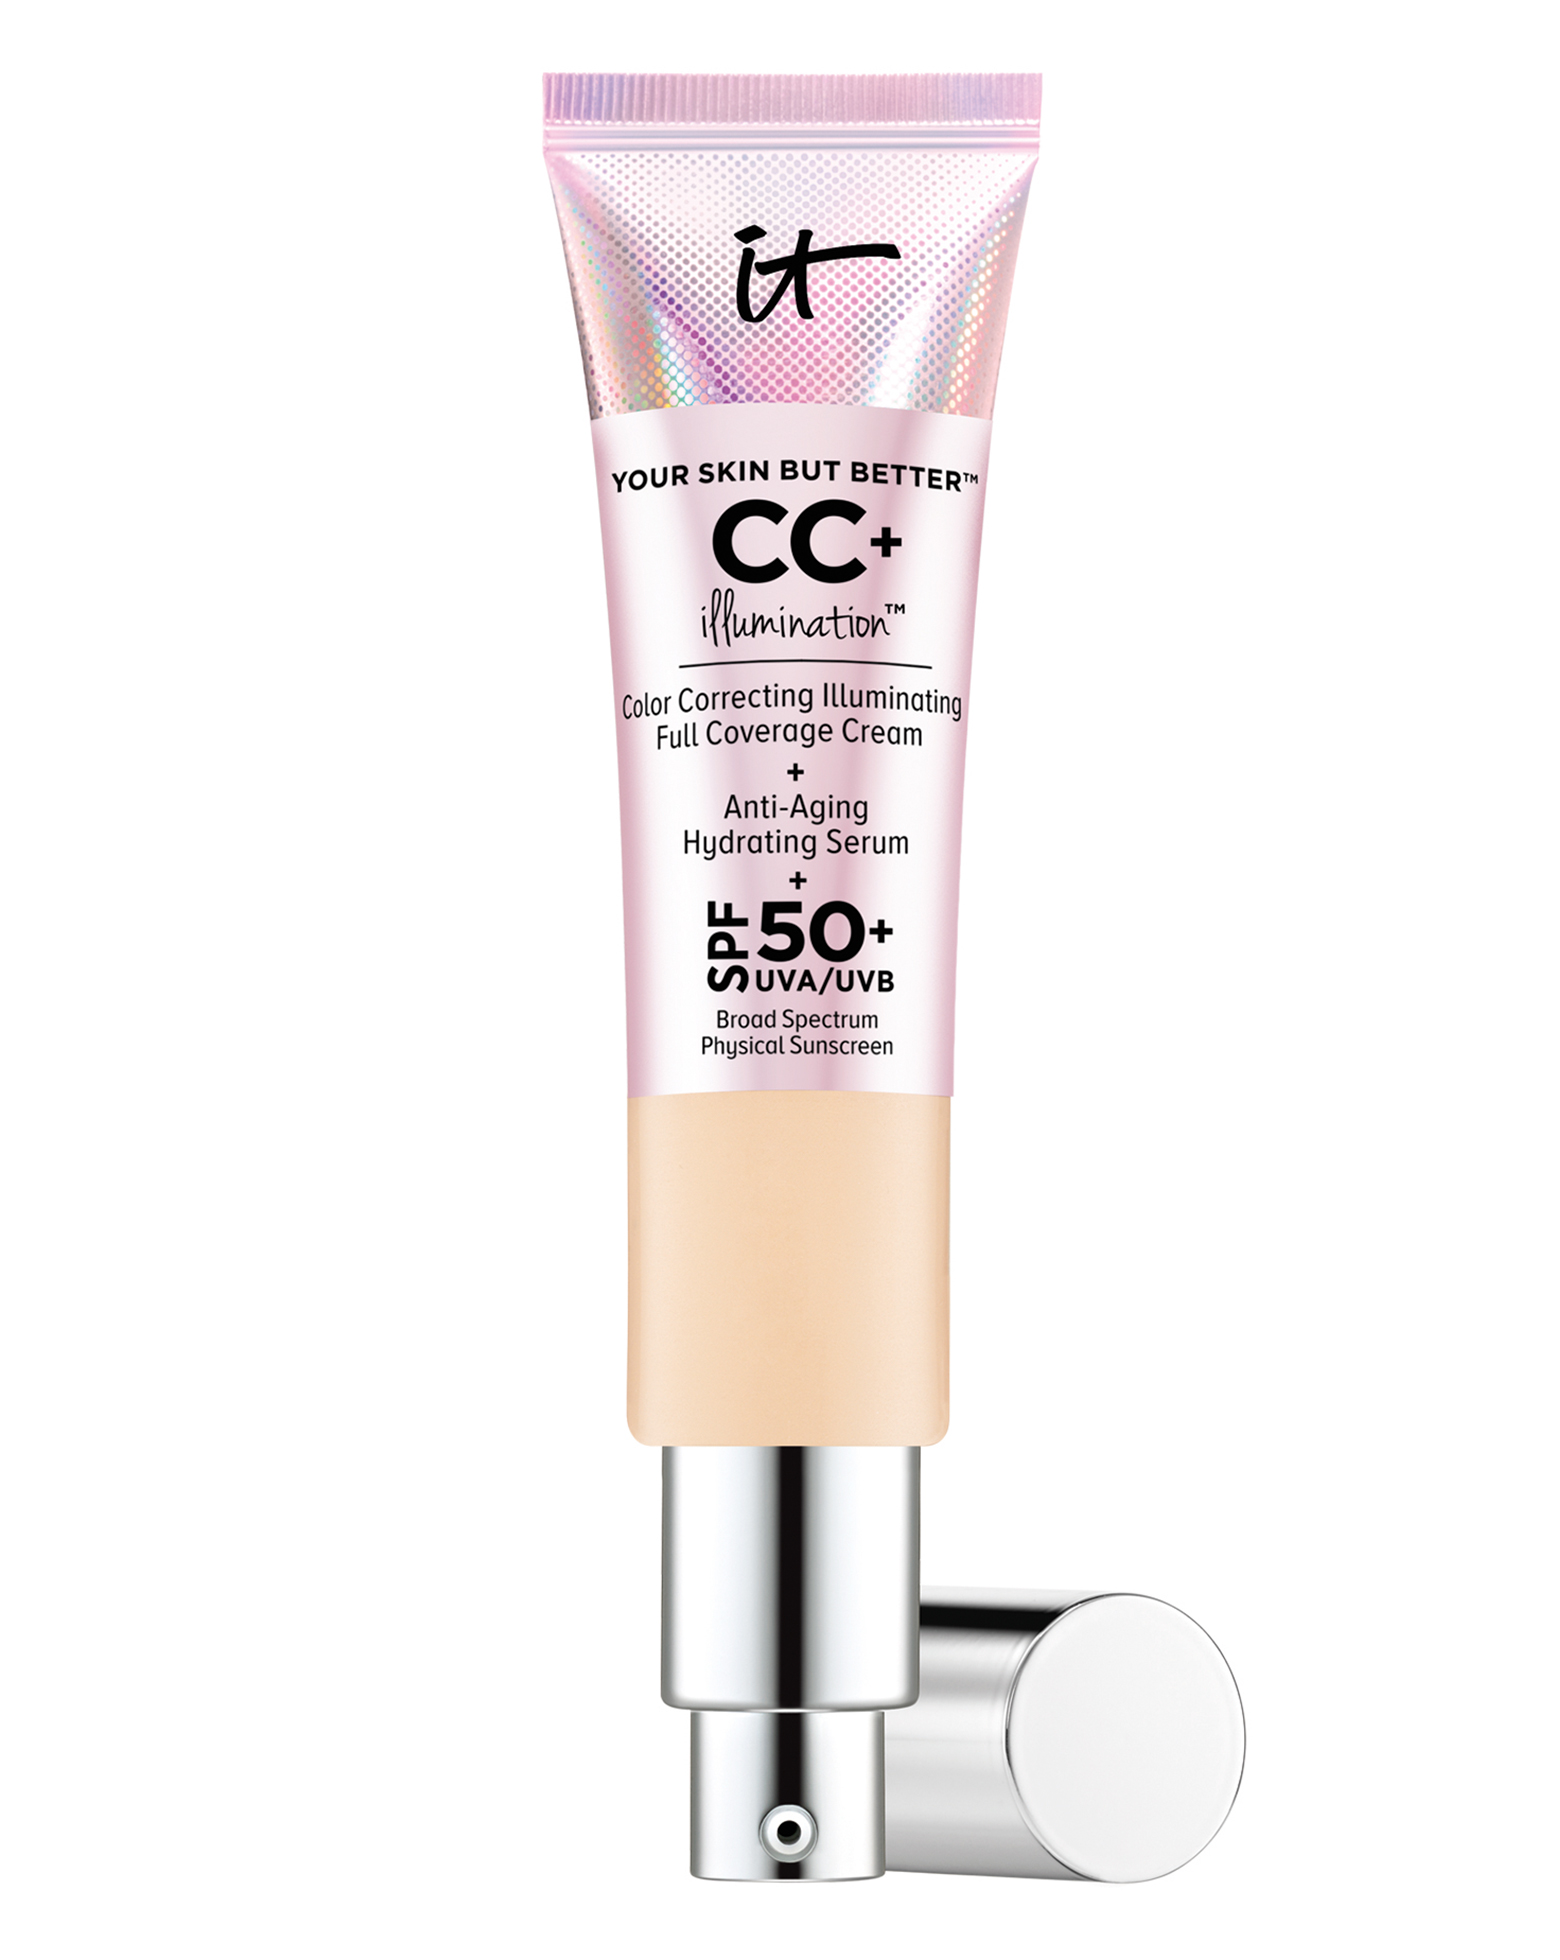 984b797ba5324 IT Cosmetics. Your Skin But Better CC+ Illumination SPF 50+